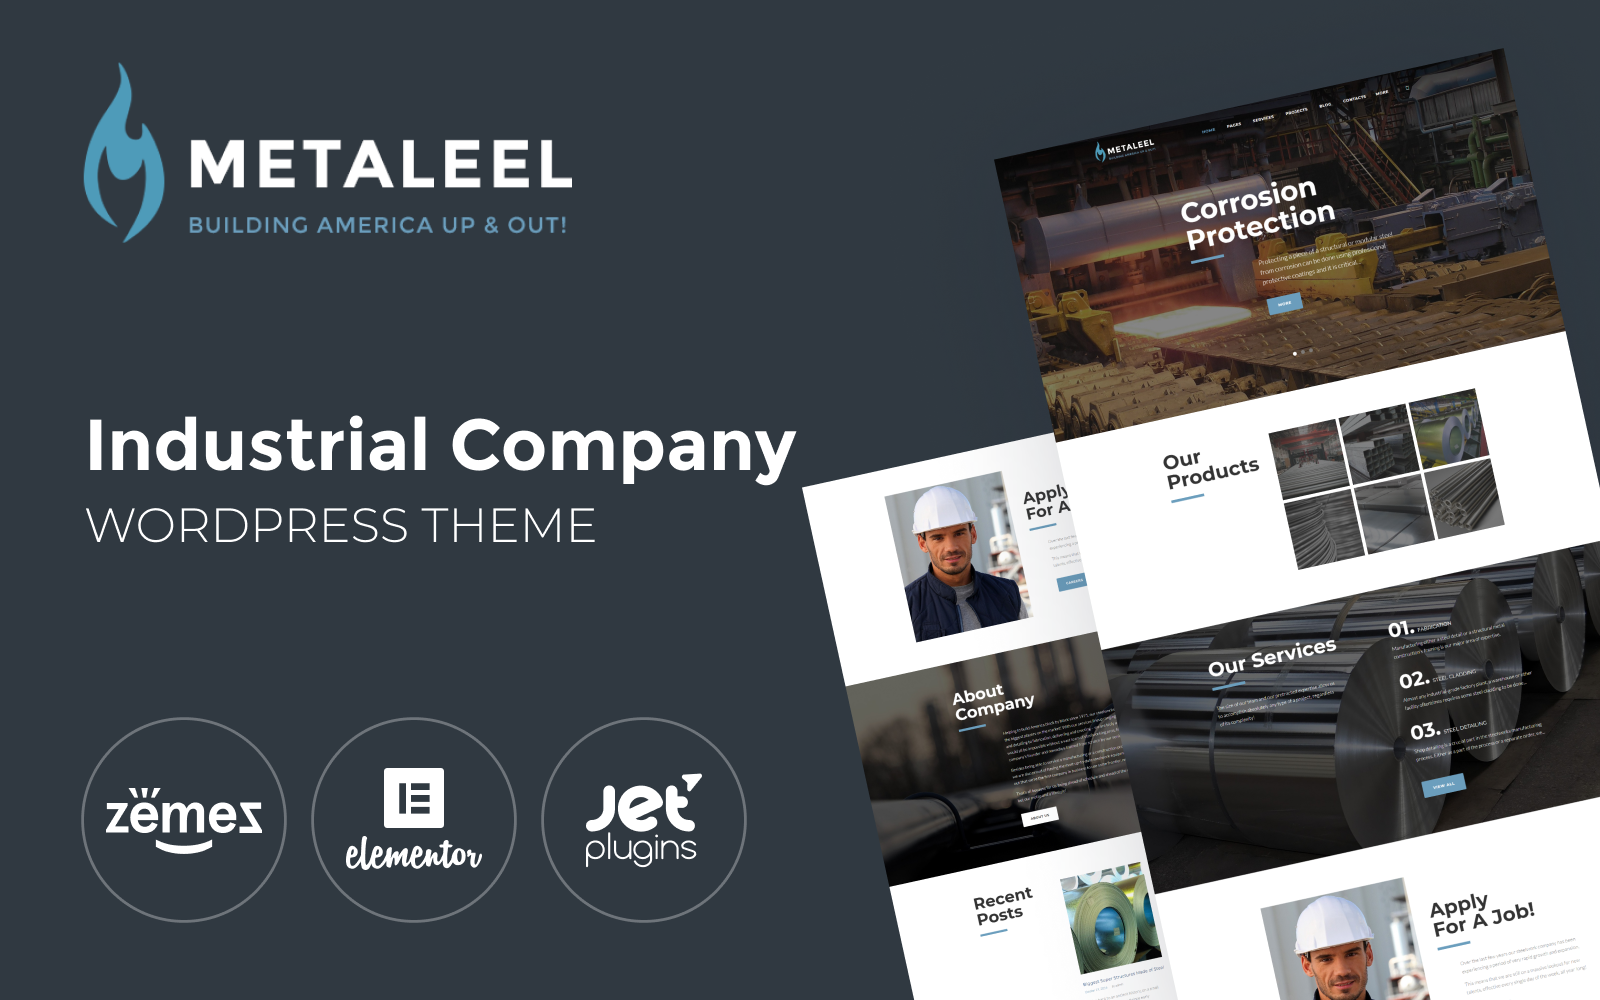 Mataleel - Industrial Company Website Template For WordPress Theme